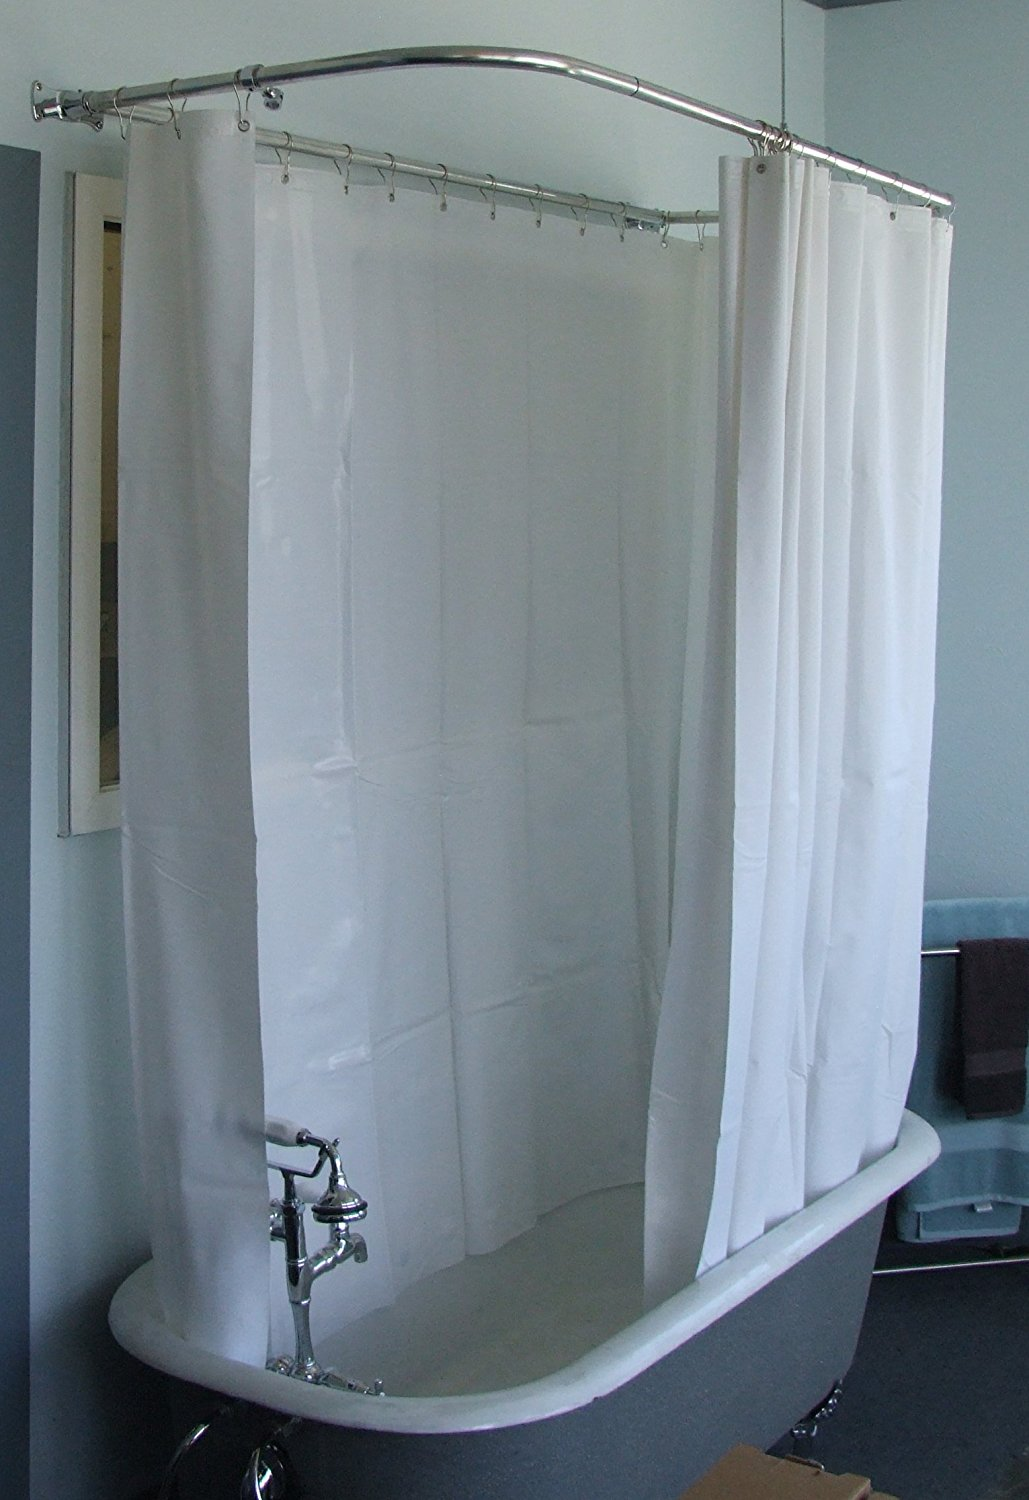 Oval Shower Curtain Rod for Clawfoot Tub | Clawfoot Tub Shower Curtain | Circular Shower Curtain